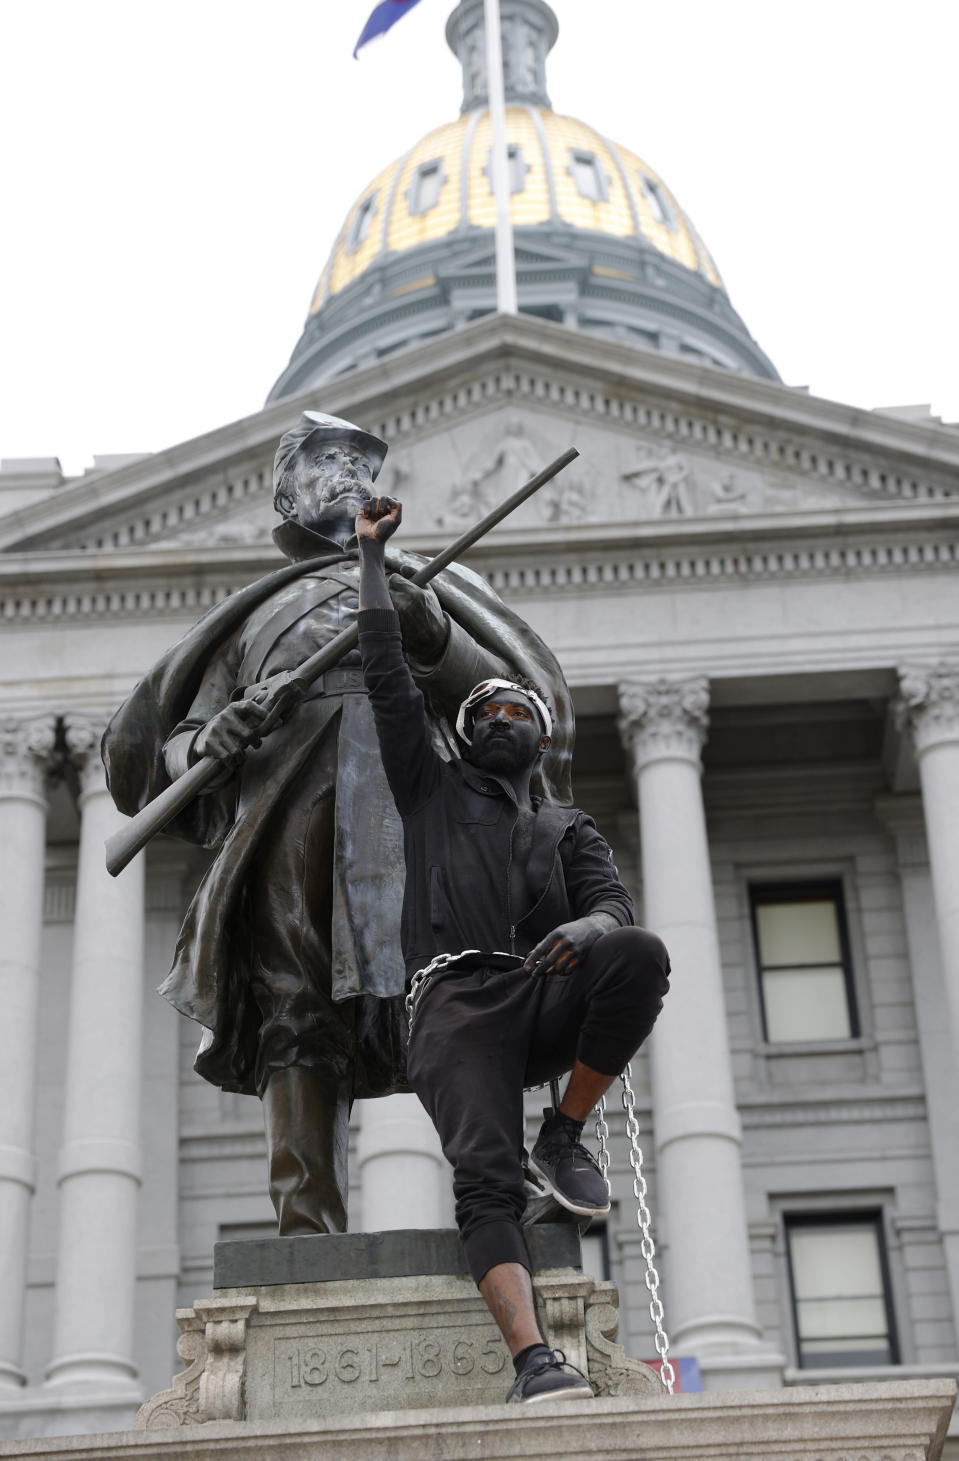 FILE - In this June 6, 2020 file photo, a demonstrator raises his fist after chaining himself to the Civil War Monument during protests over the death of George Floyd in front of the State Capitol in downtown Denver. On Thursday, Feb. 25, 2021, state lawmakers are considering what to put on the pedestal on which the monument stood until it was toppled in late June 2020. (AP Photo/David Zalubowski, File)